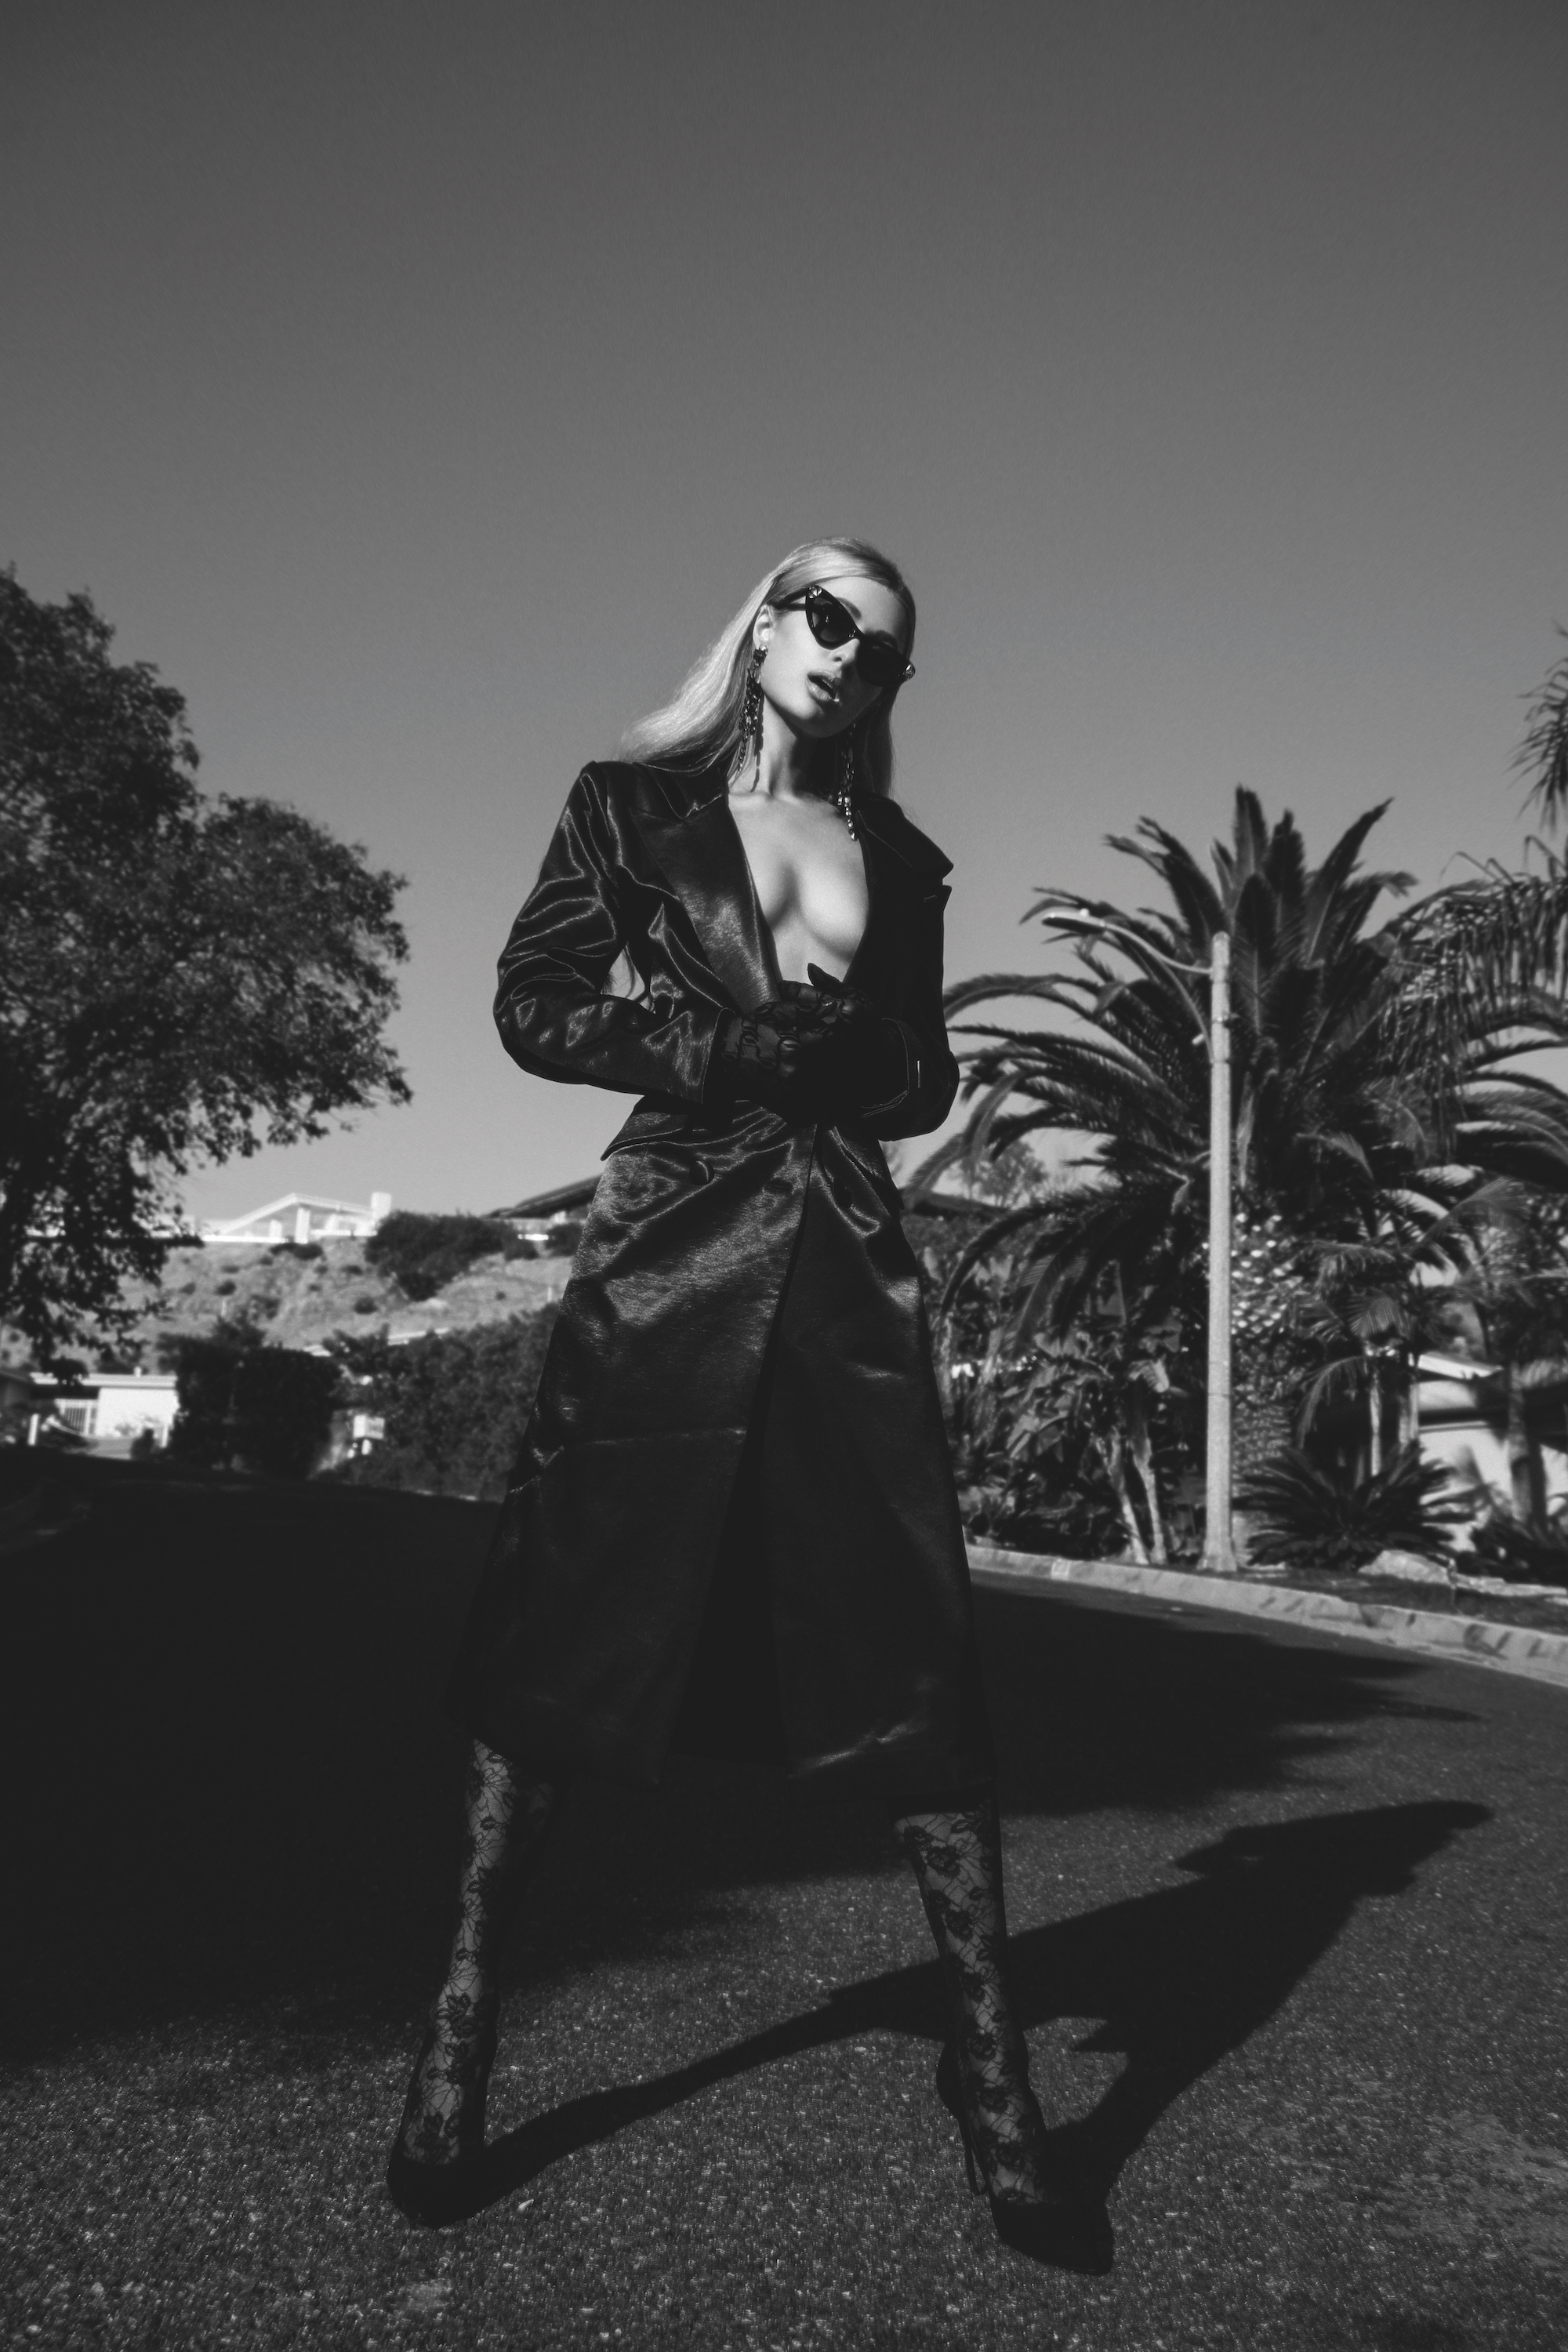 Paris Hilton interview in the Spring/Summer 2020 issue of Rollacoaster wearing Juicy Couture outside